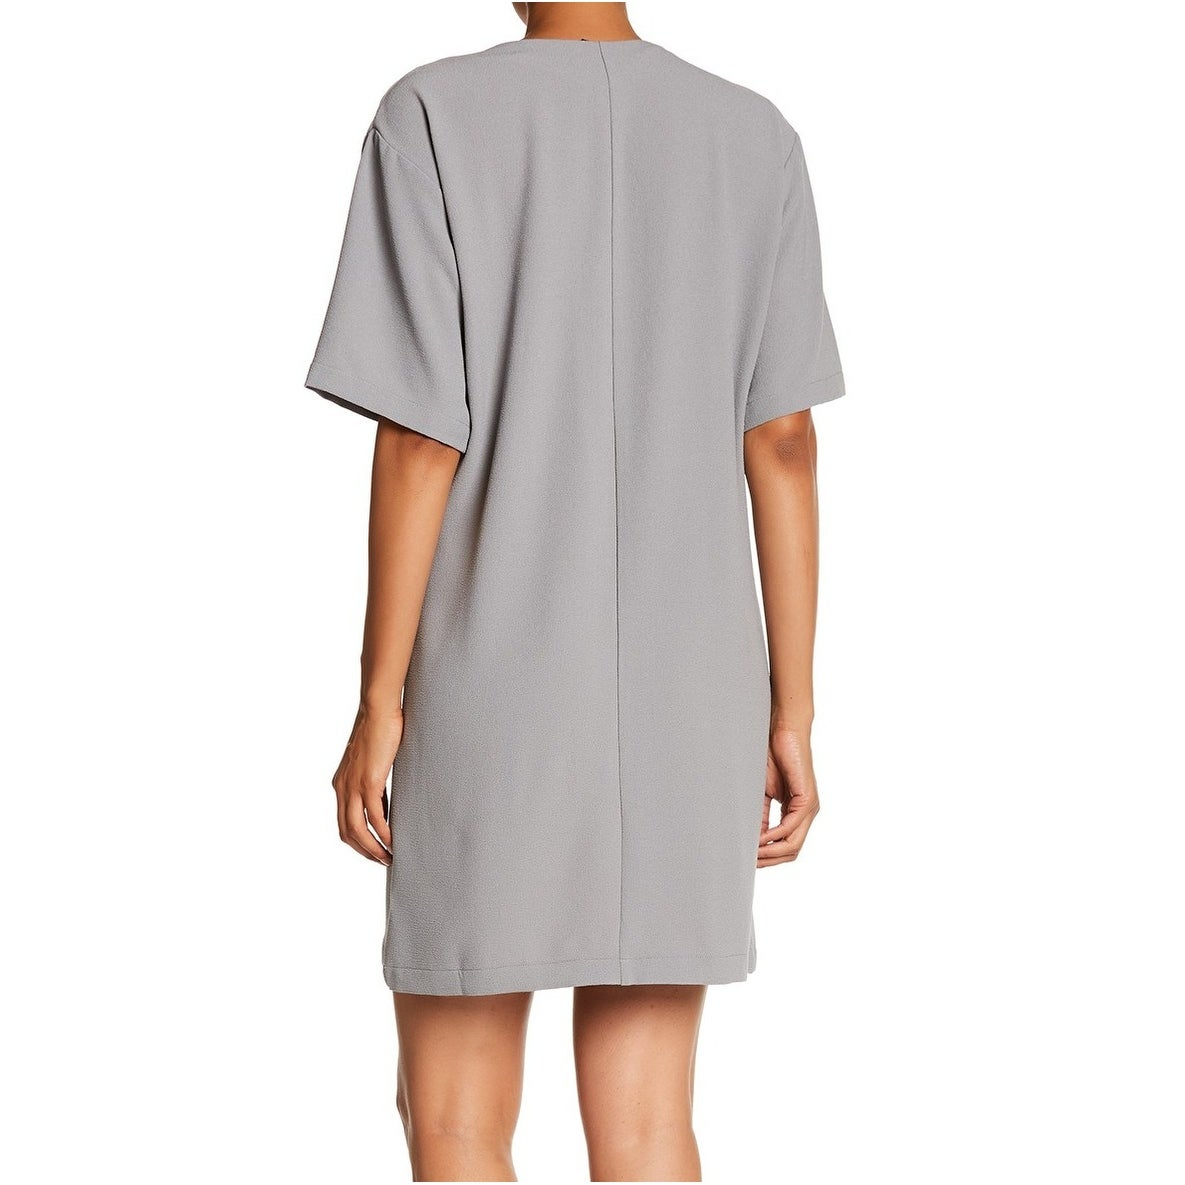 14a452cd32 Shop Bobeau Gray Womens Size Small S V-Neck Surplice Crepe Shift Dress -  Free Shipping On Orders Over $45 - Overstock - 28508305